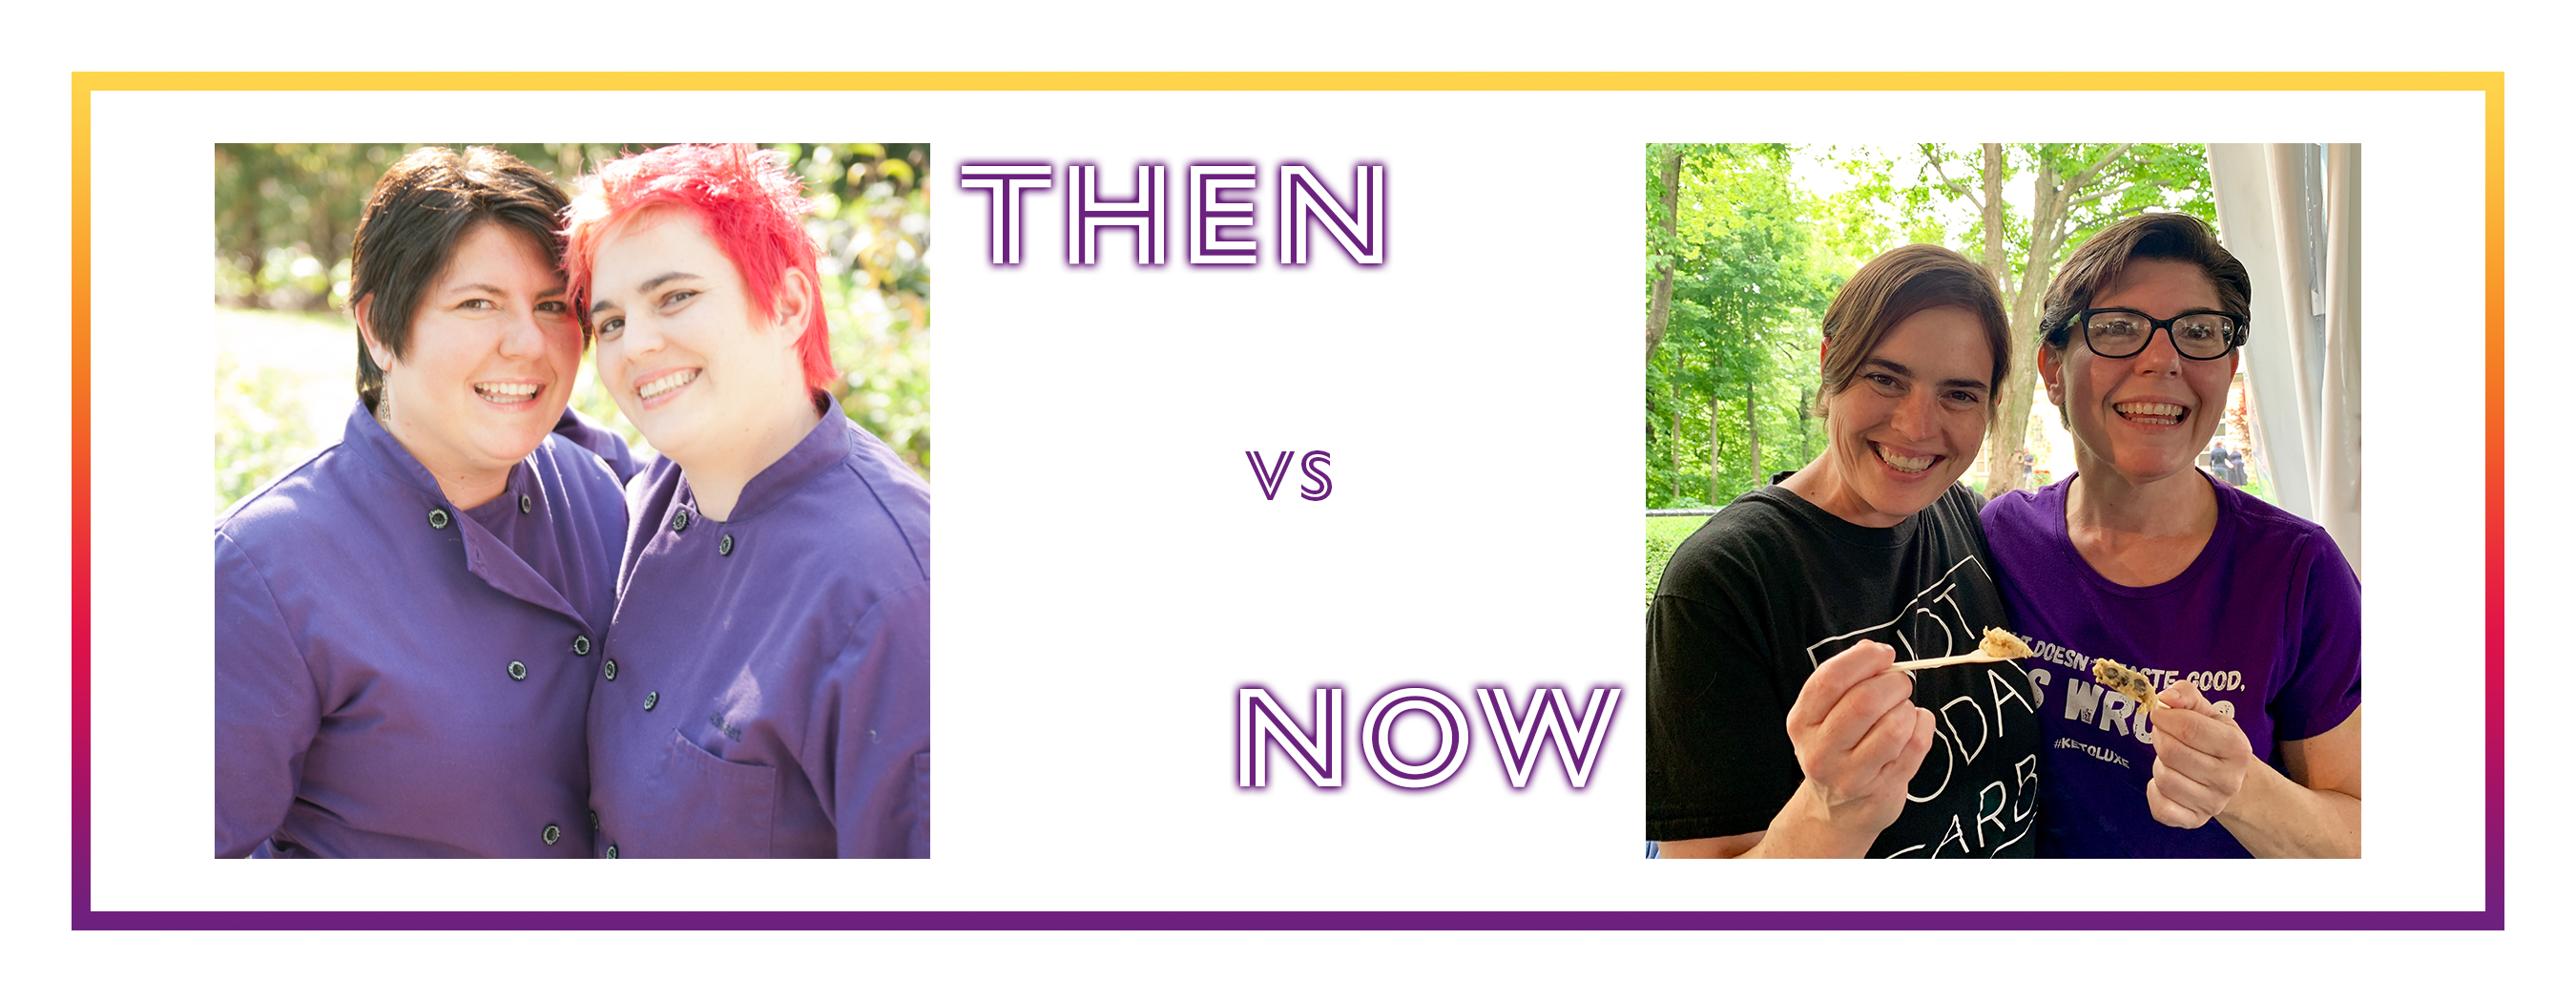 "Image showing pictures of Sam and Alexa before and after their weight loss. The text reads ""Then vs. Now."""